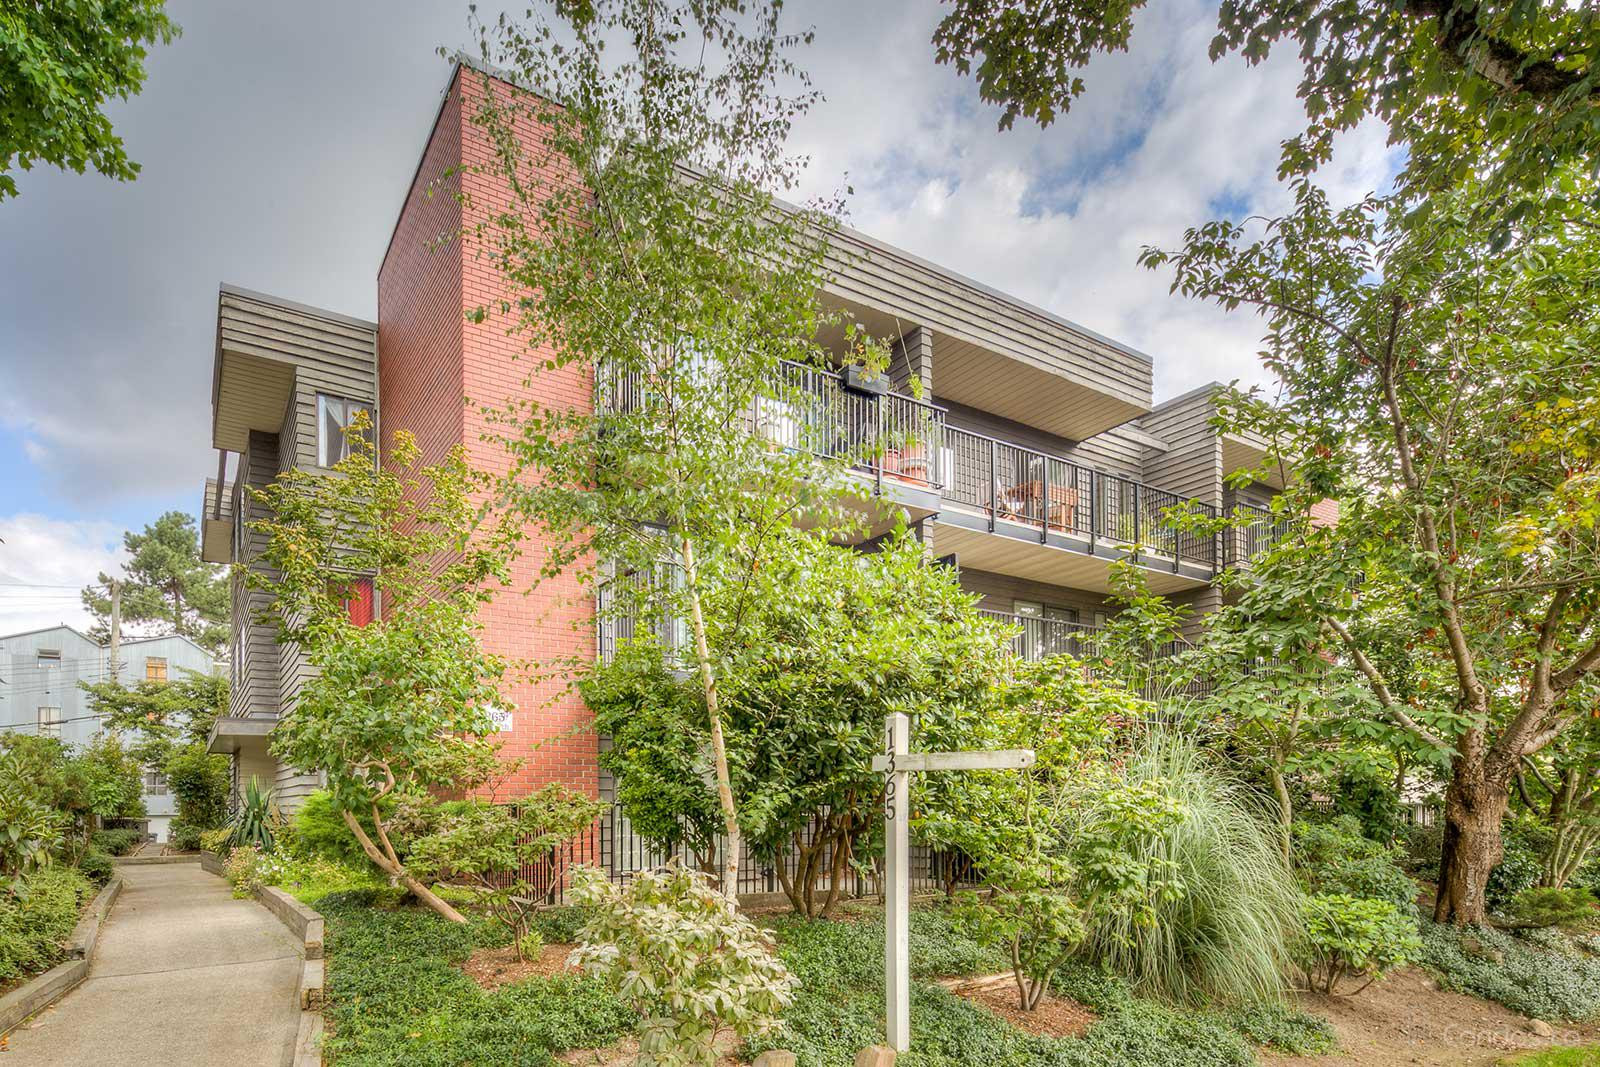 Mclean Gardens at 1365 E 7th Ave, Vancouver 0